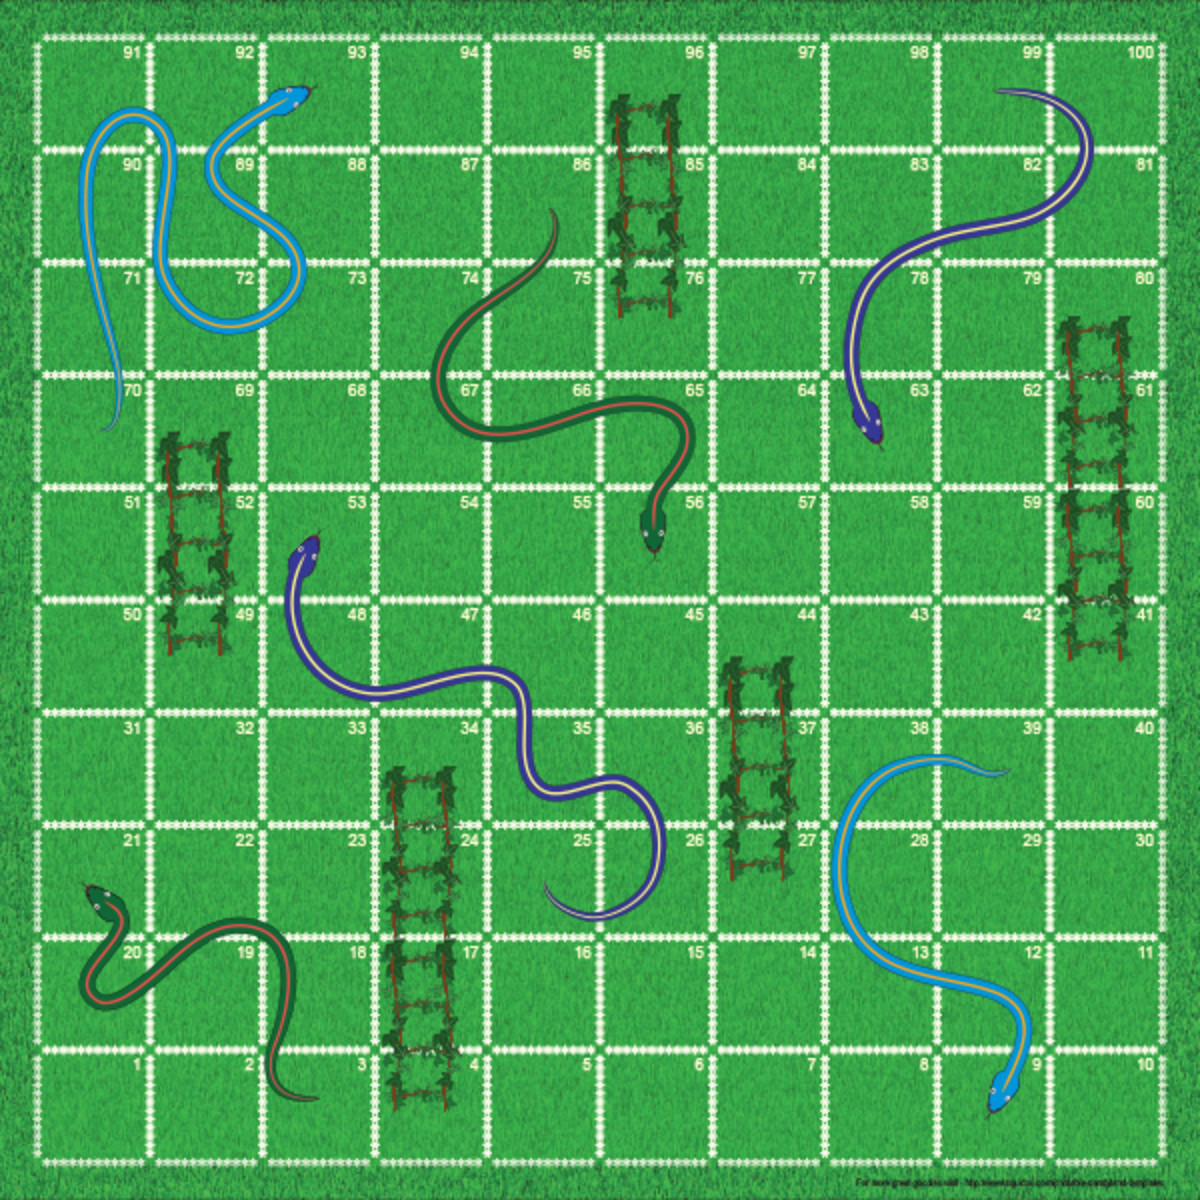 Blank Snakes and Ladders template.